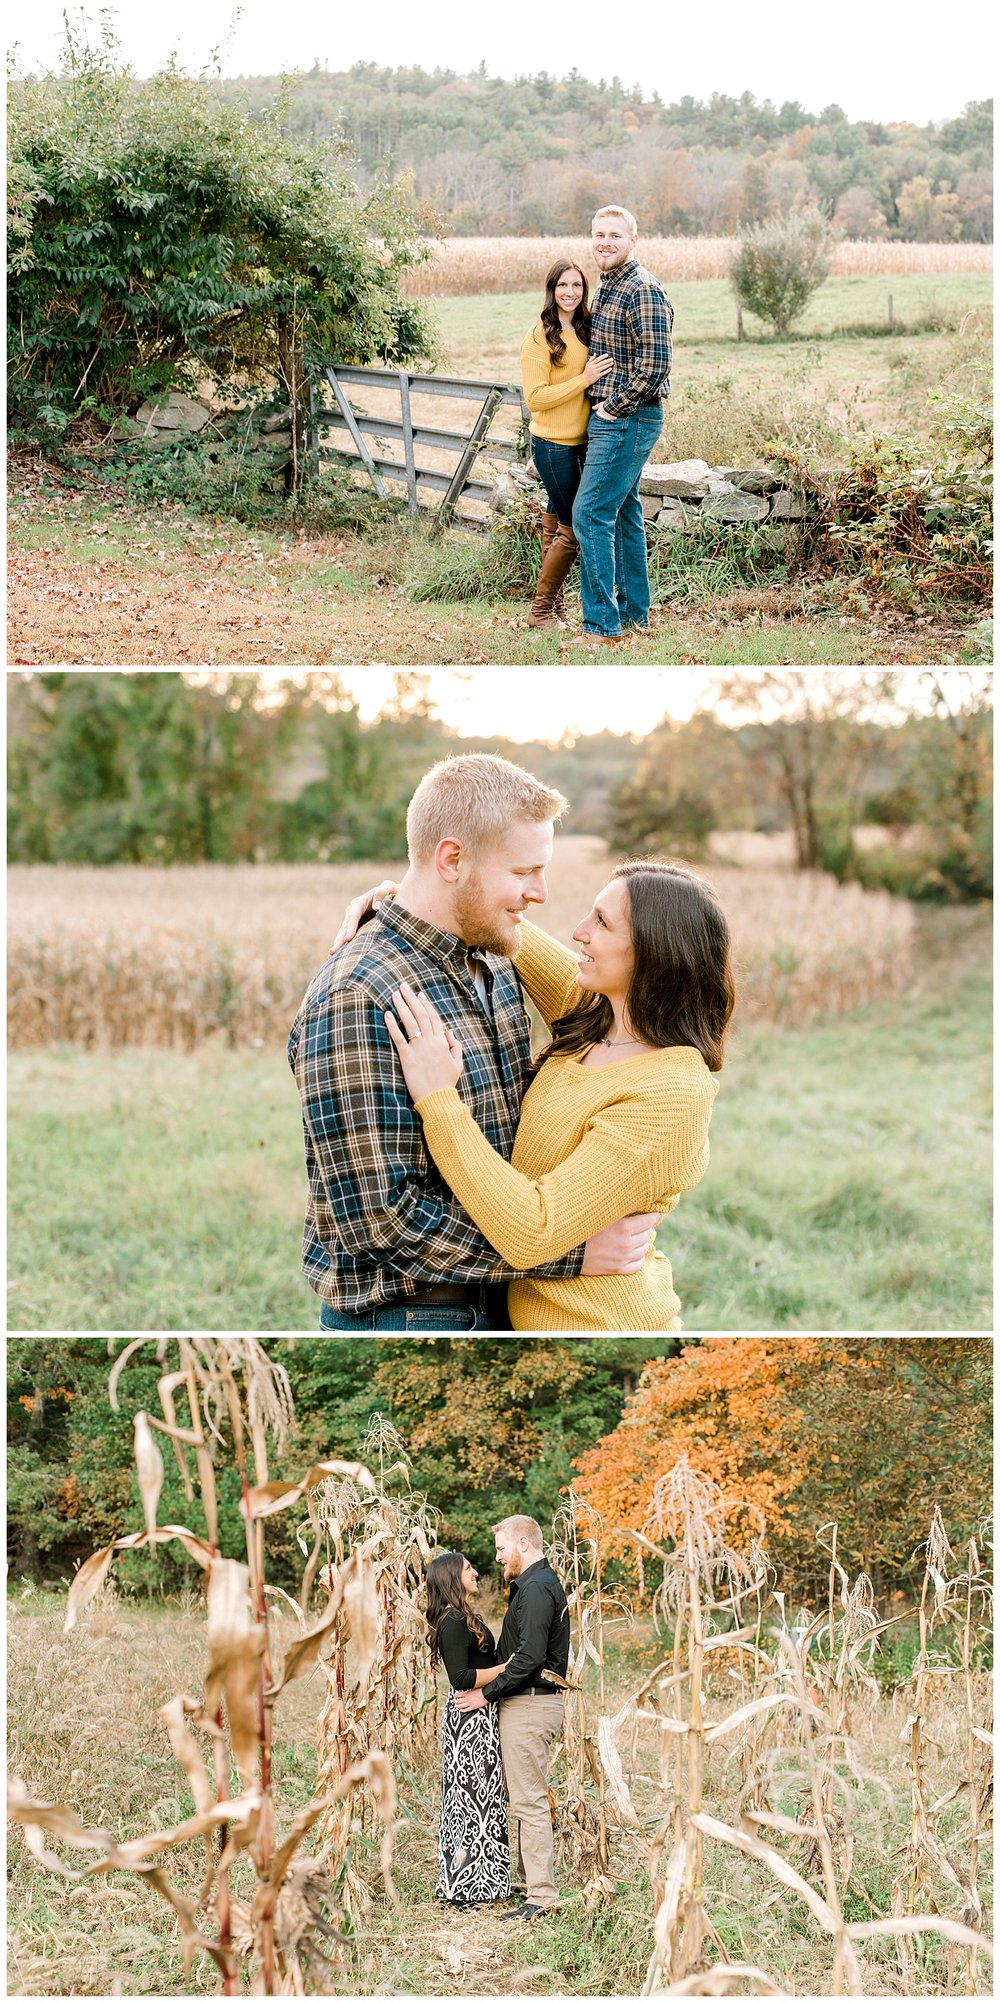 october18-connecticut-engagement-photography-rustic-farm-9.jpg